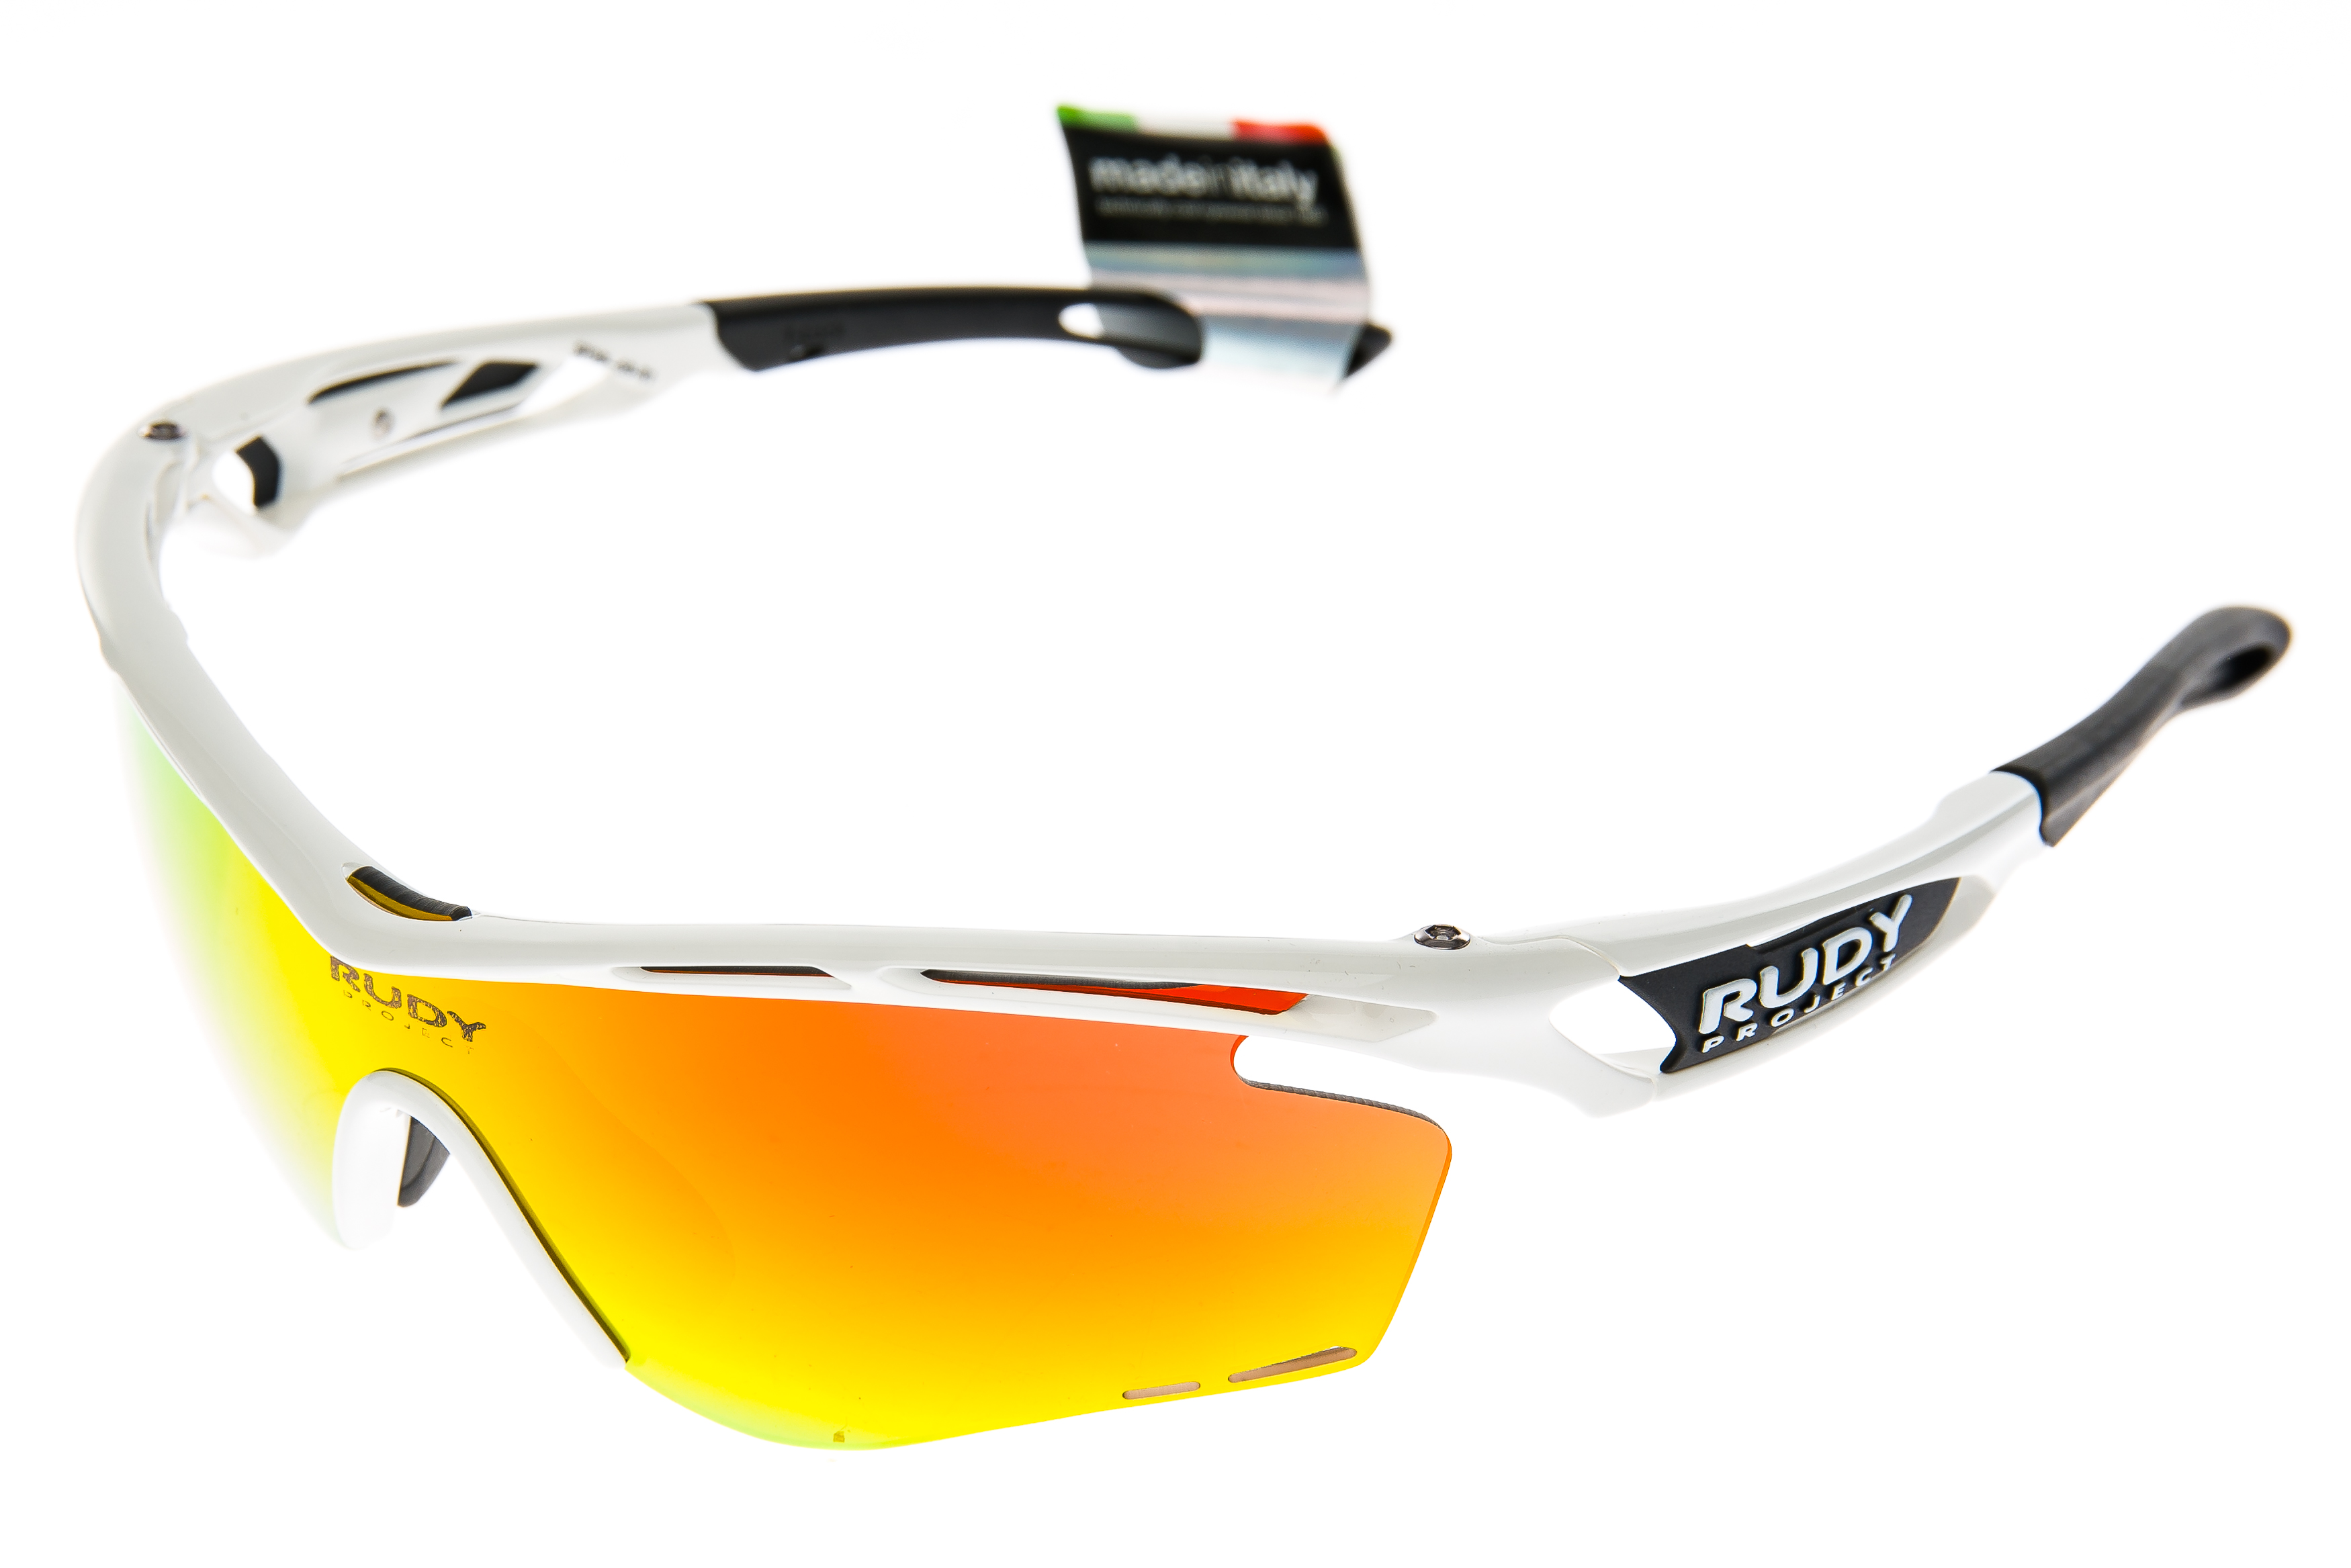 973506493d Details about Rudy Project Tralyx LTD Sunglasses White Gloss Frame  Orange Clear Lenses